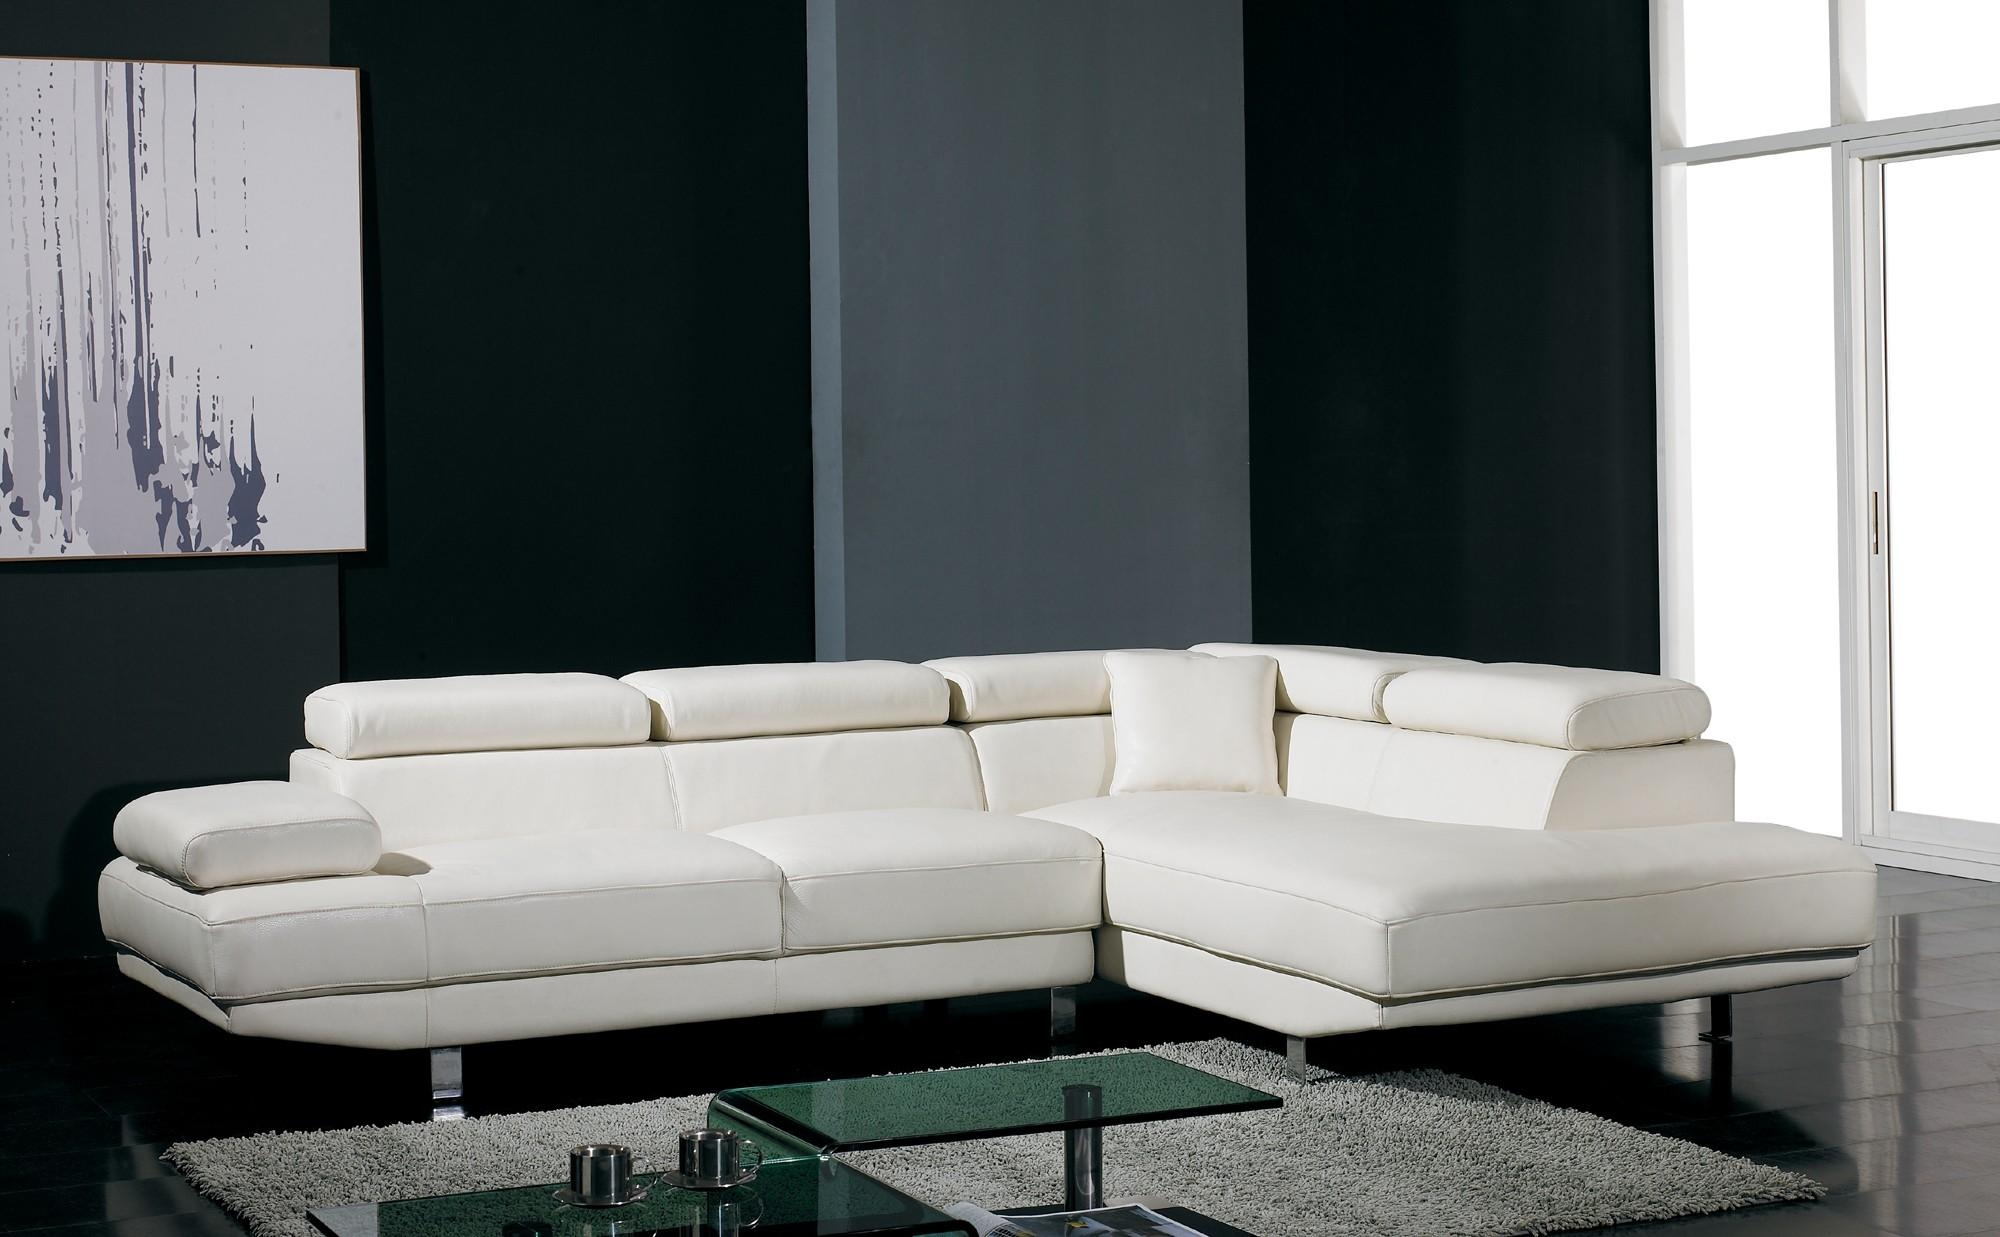 White Sectional Sofa For Sale – Hotelsbacau With Regard To White Sectional Sofa For Sale (Image 21 of 21)